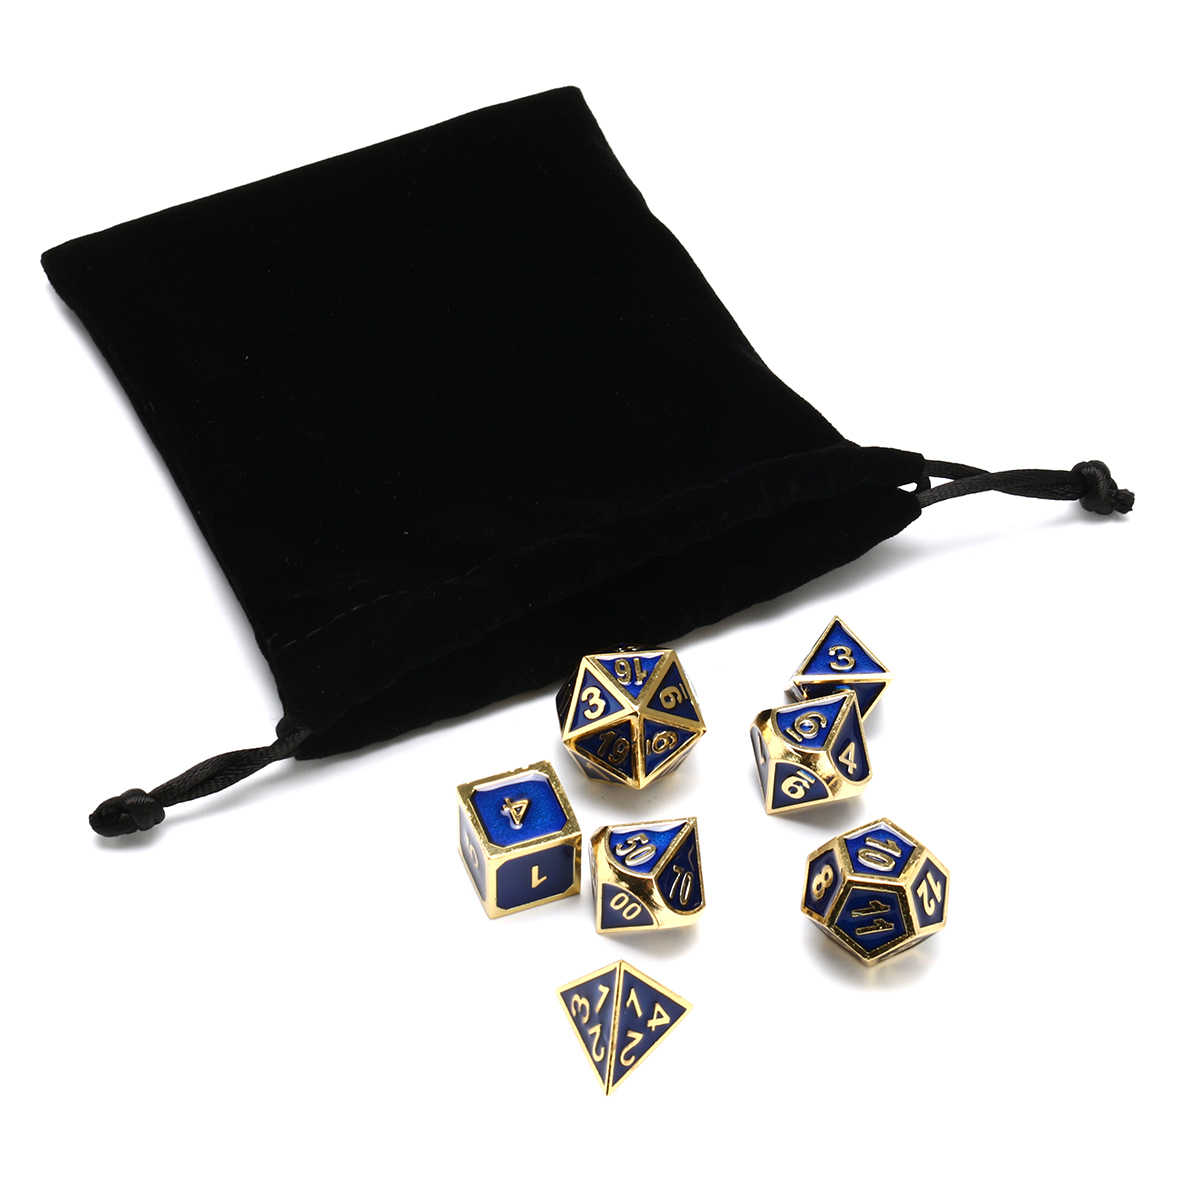 Antique Color Solid Metal Heavy Dice Set Polyhedral Dice Role Playing Games Dice Gadget RPG